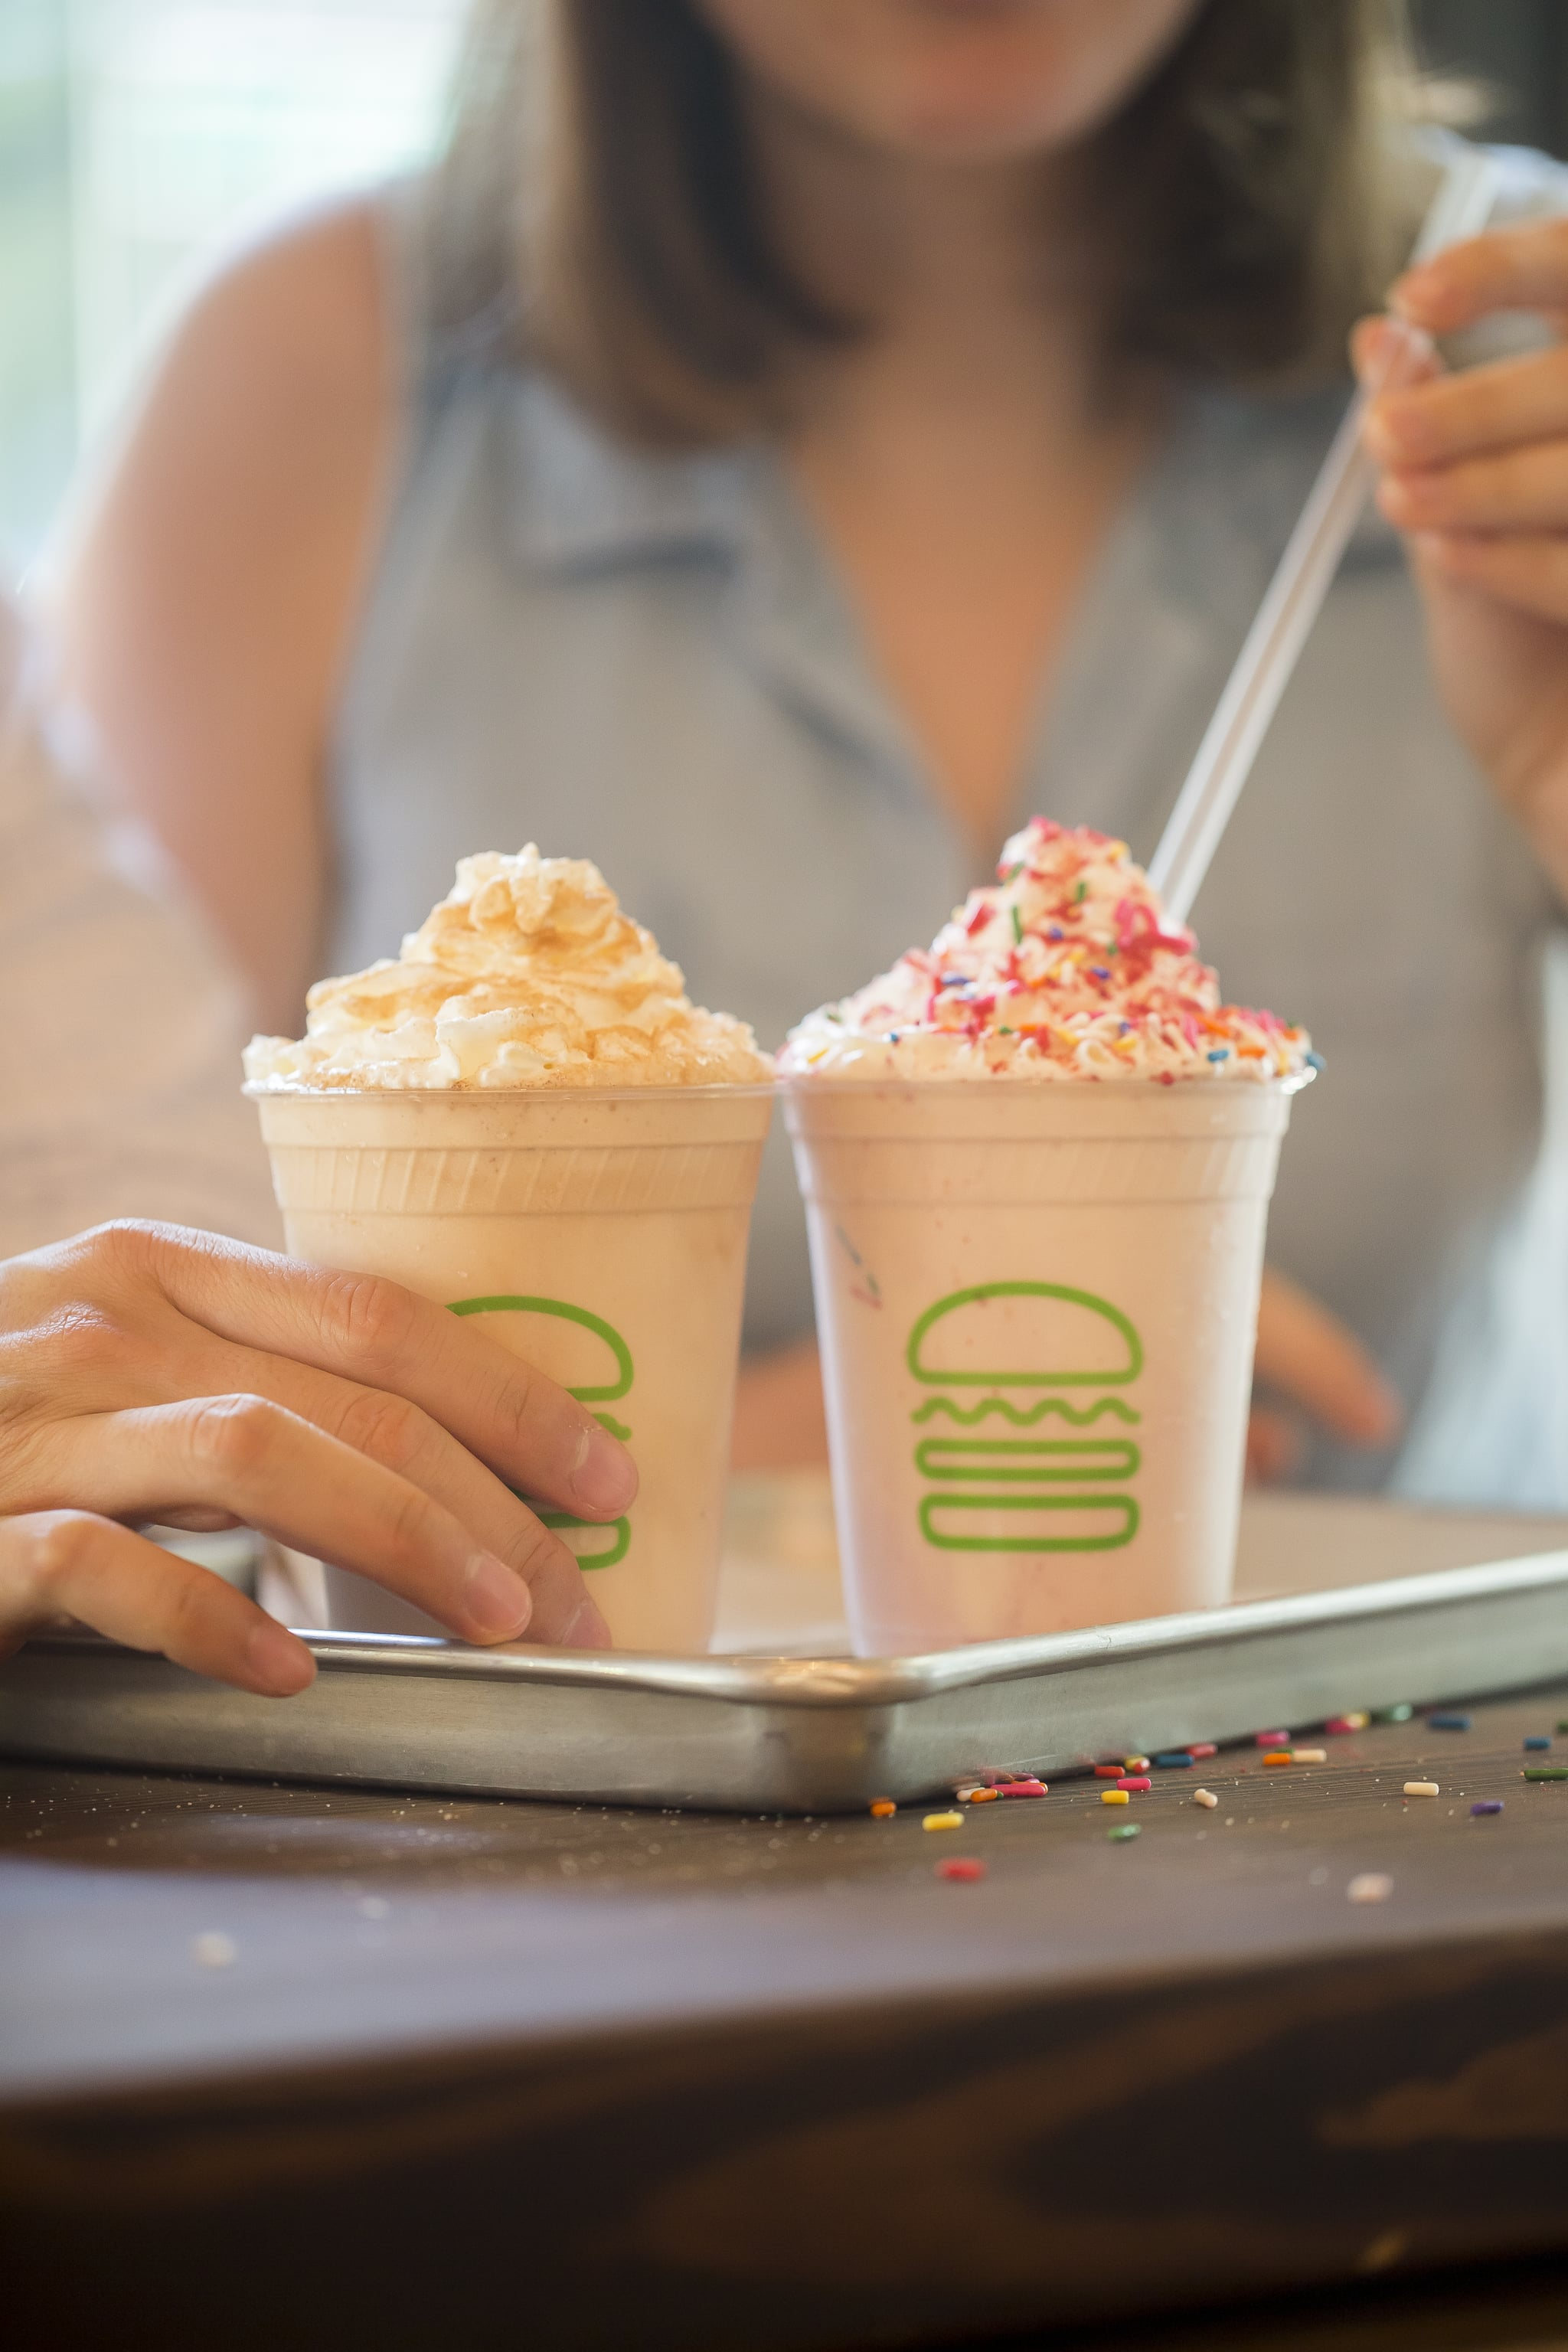 Shake Shack Released Its First Shake Ever Made With Wine, and It's For a Good Cause!